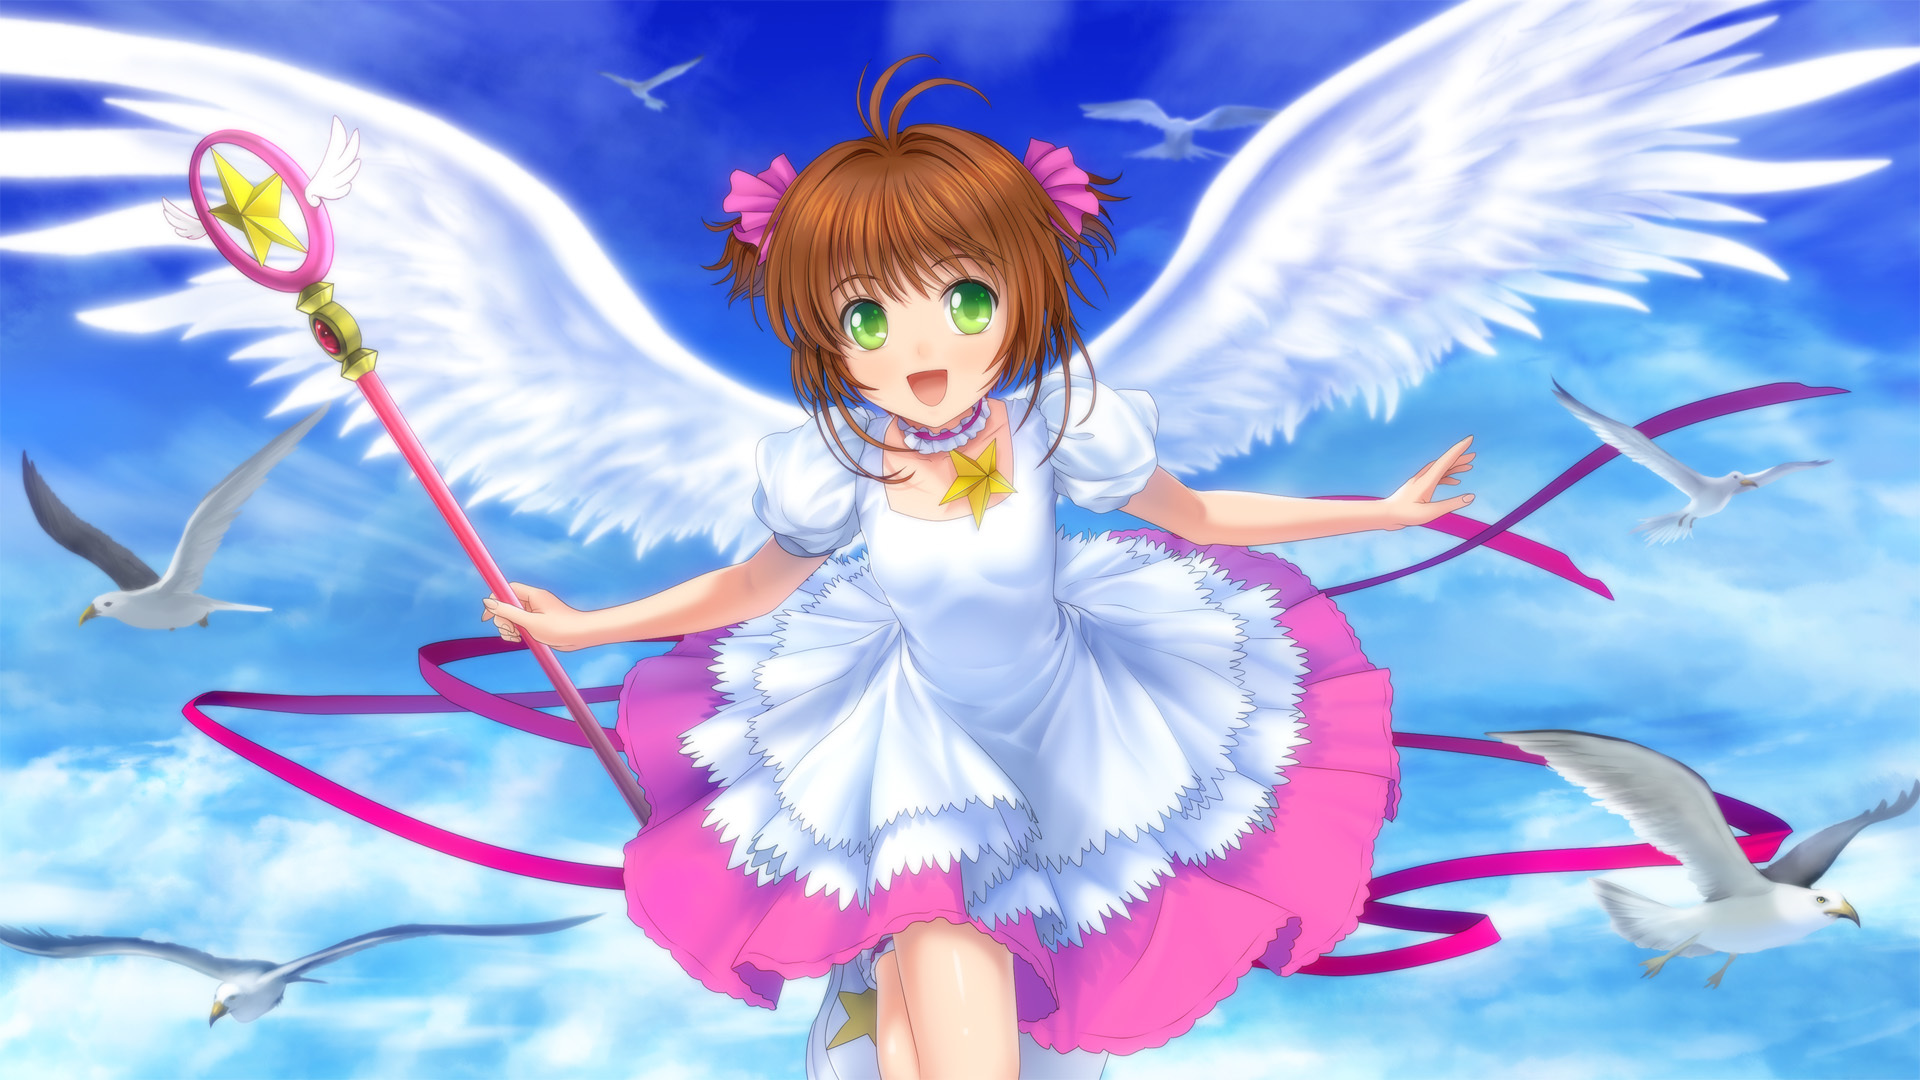 Cardcaptor Sakura HD Wallpaper